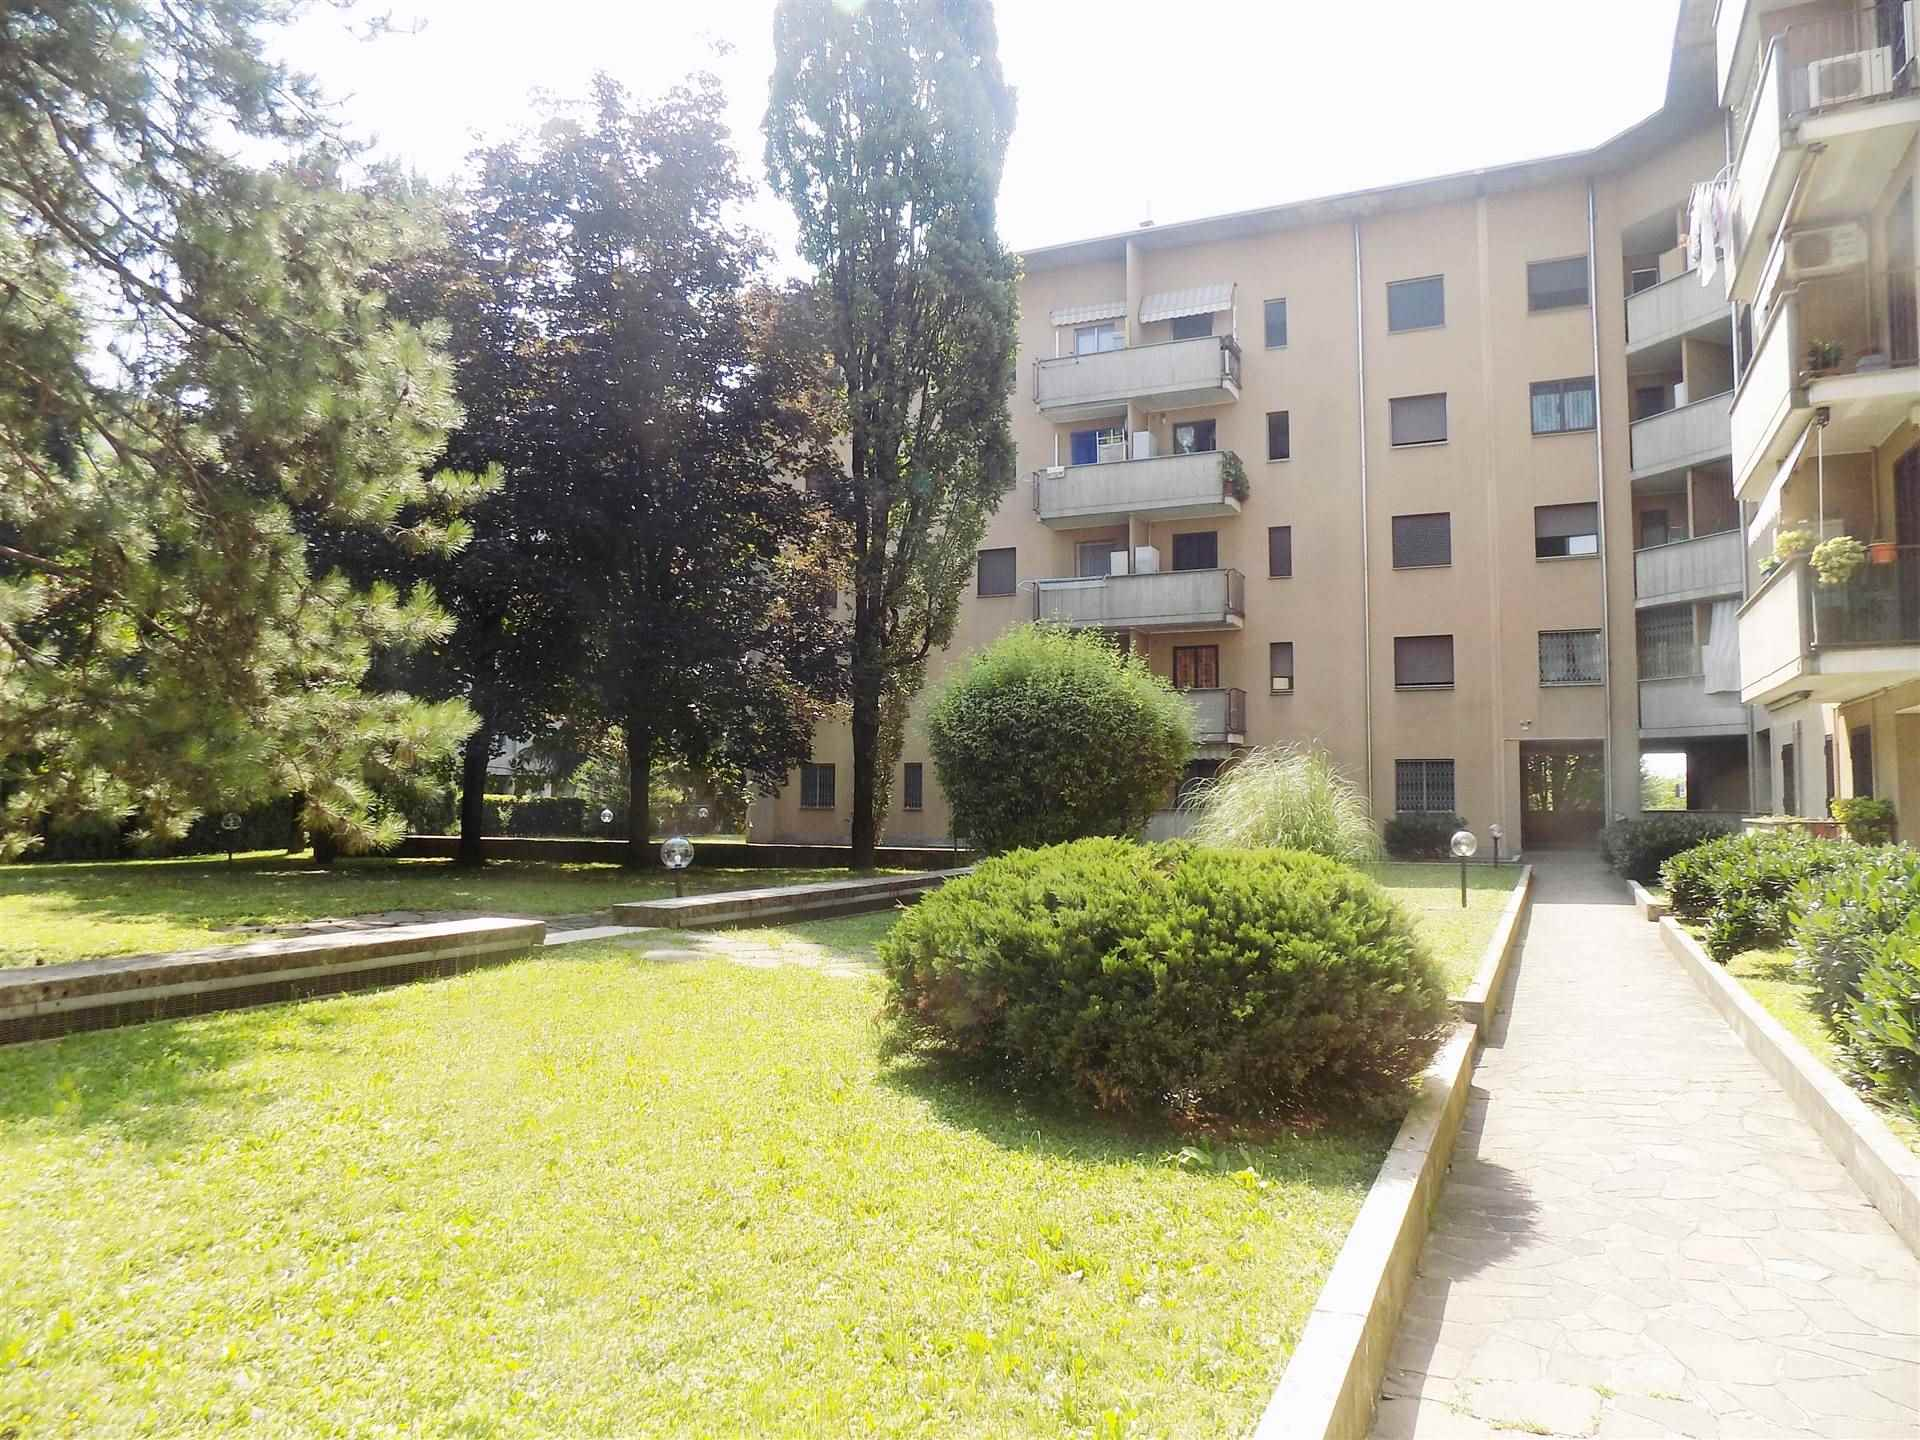 DORDERIO, BRUGHERIO, Apartment for sale of 115 Sq. mt., Good condition, Heating Individual heating system, Energetic class: F, Epi: 179,38 kwh/m2